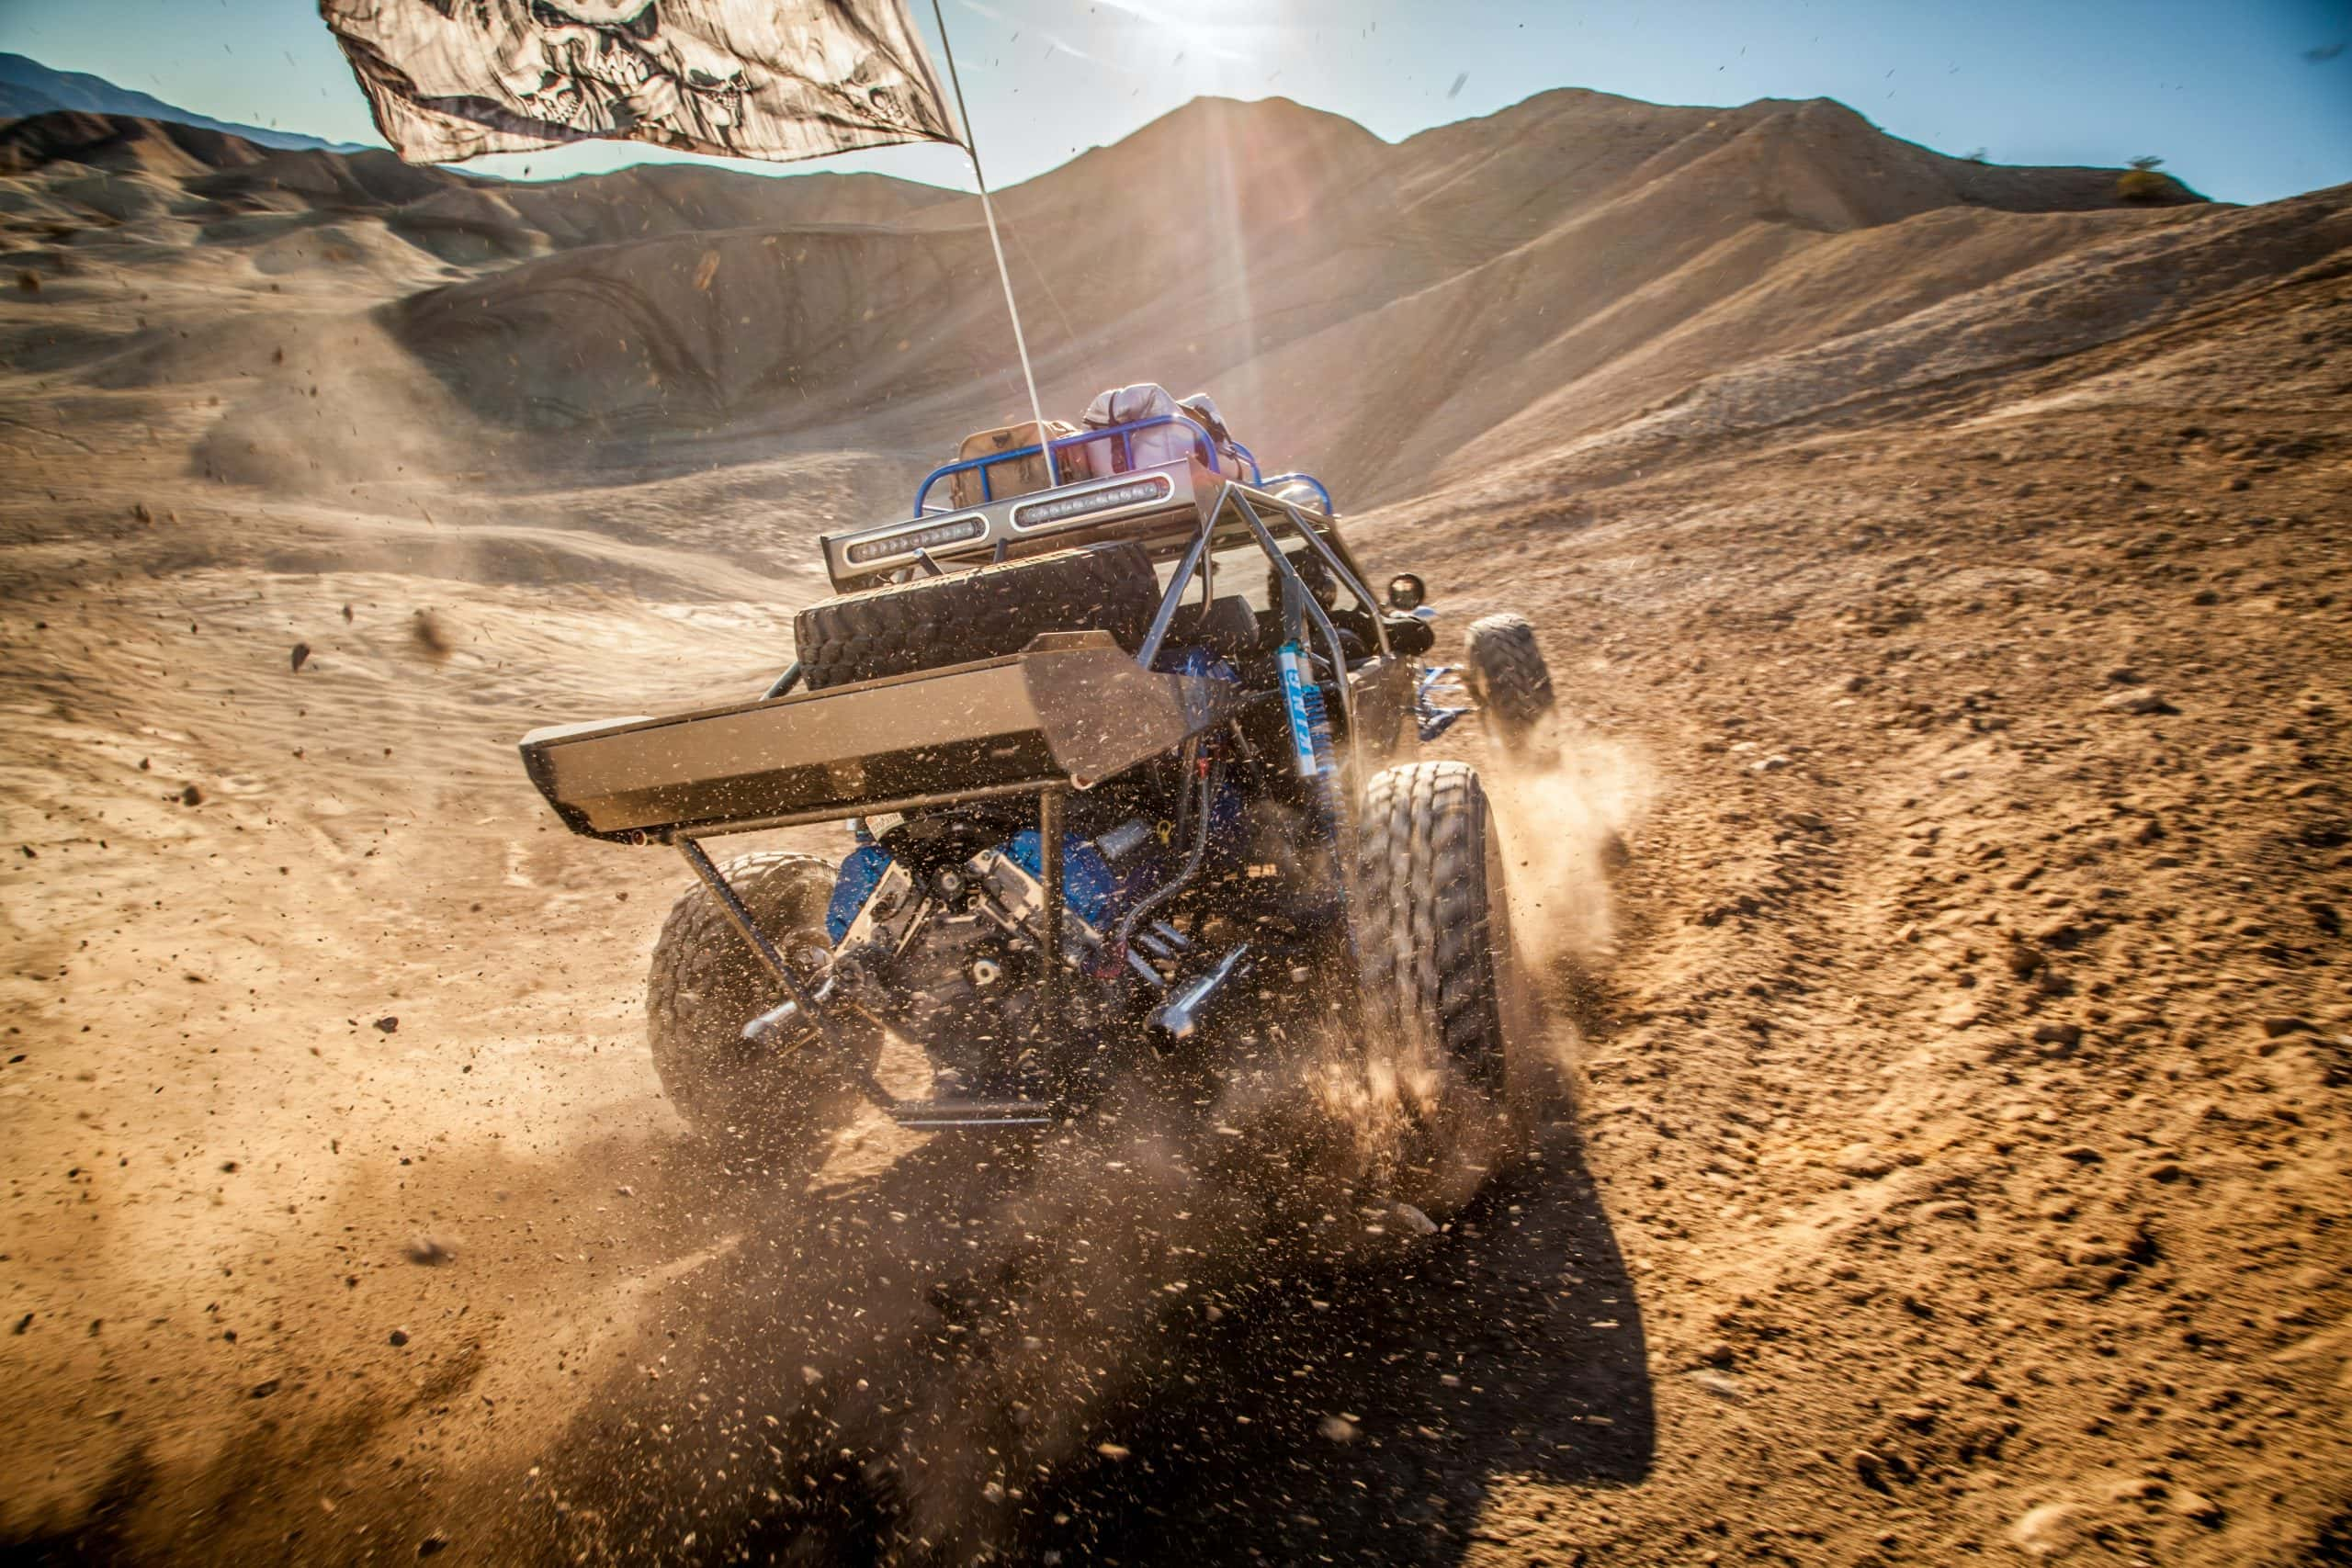 Sand duning and off-roading in the desert